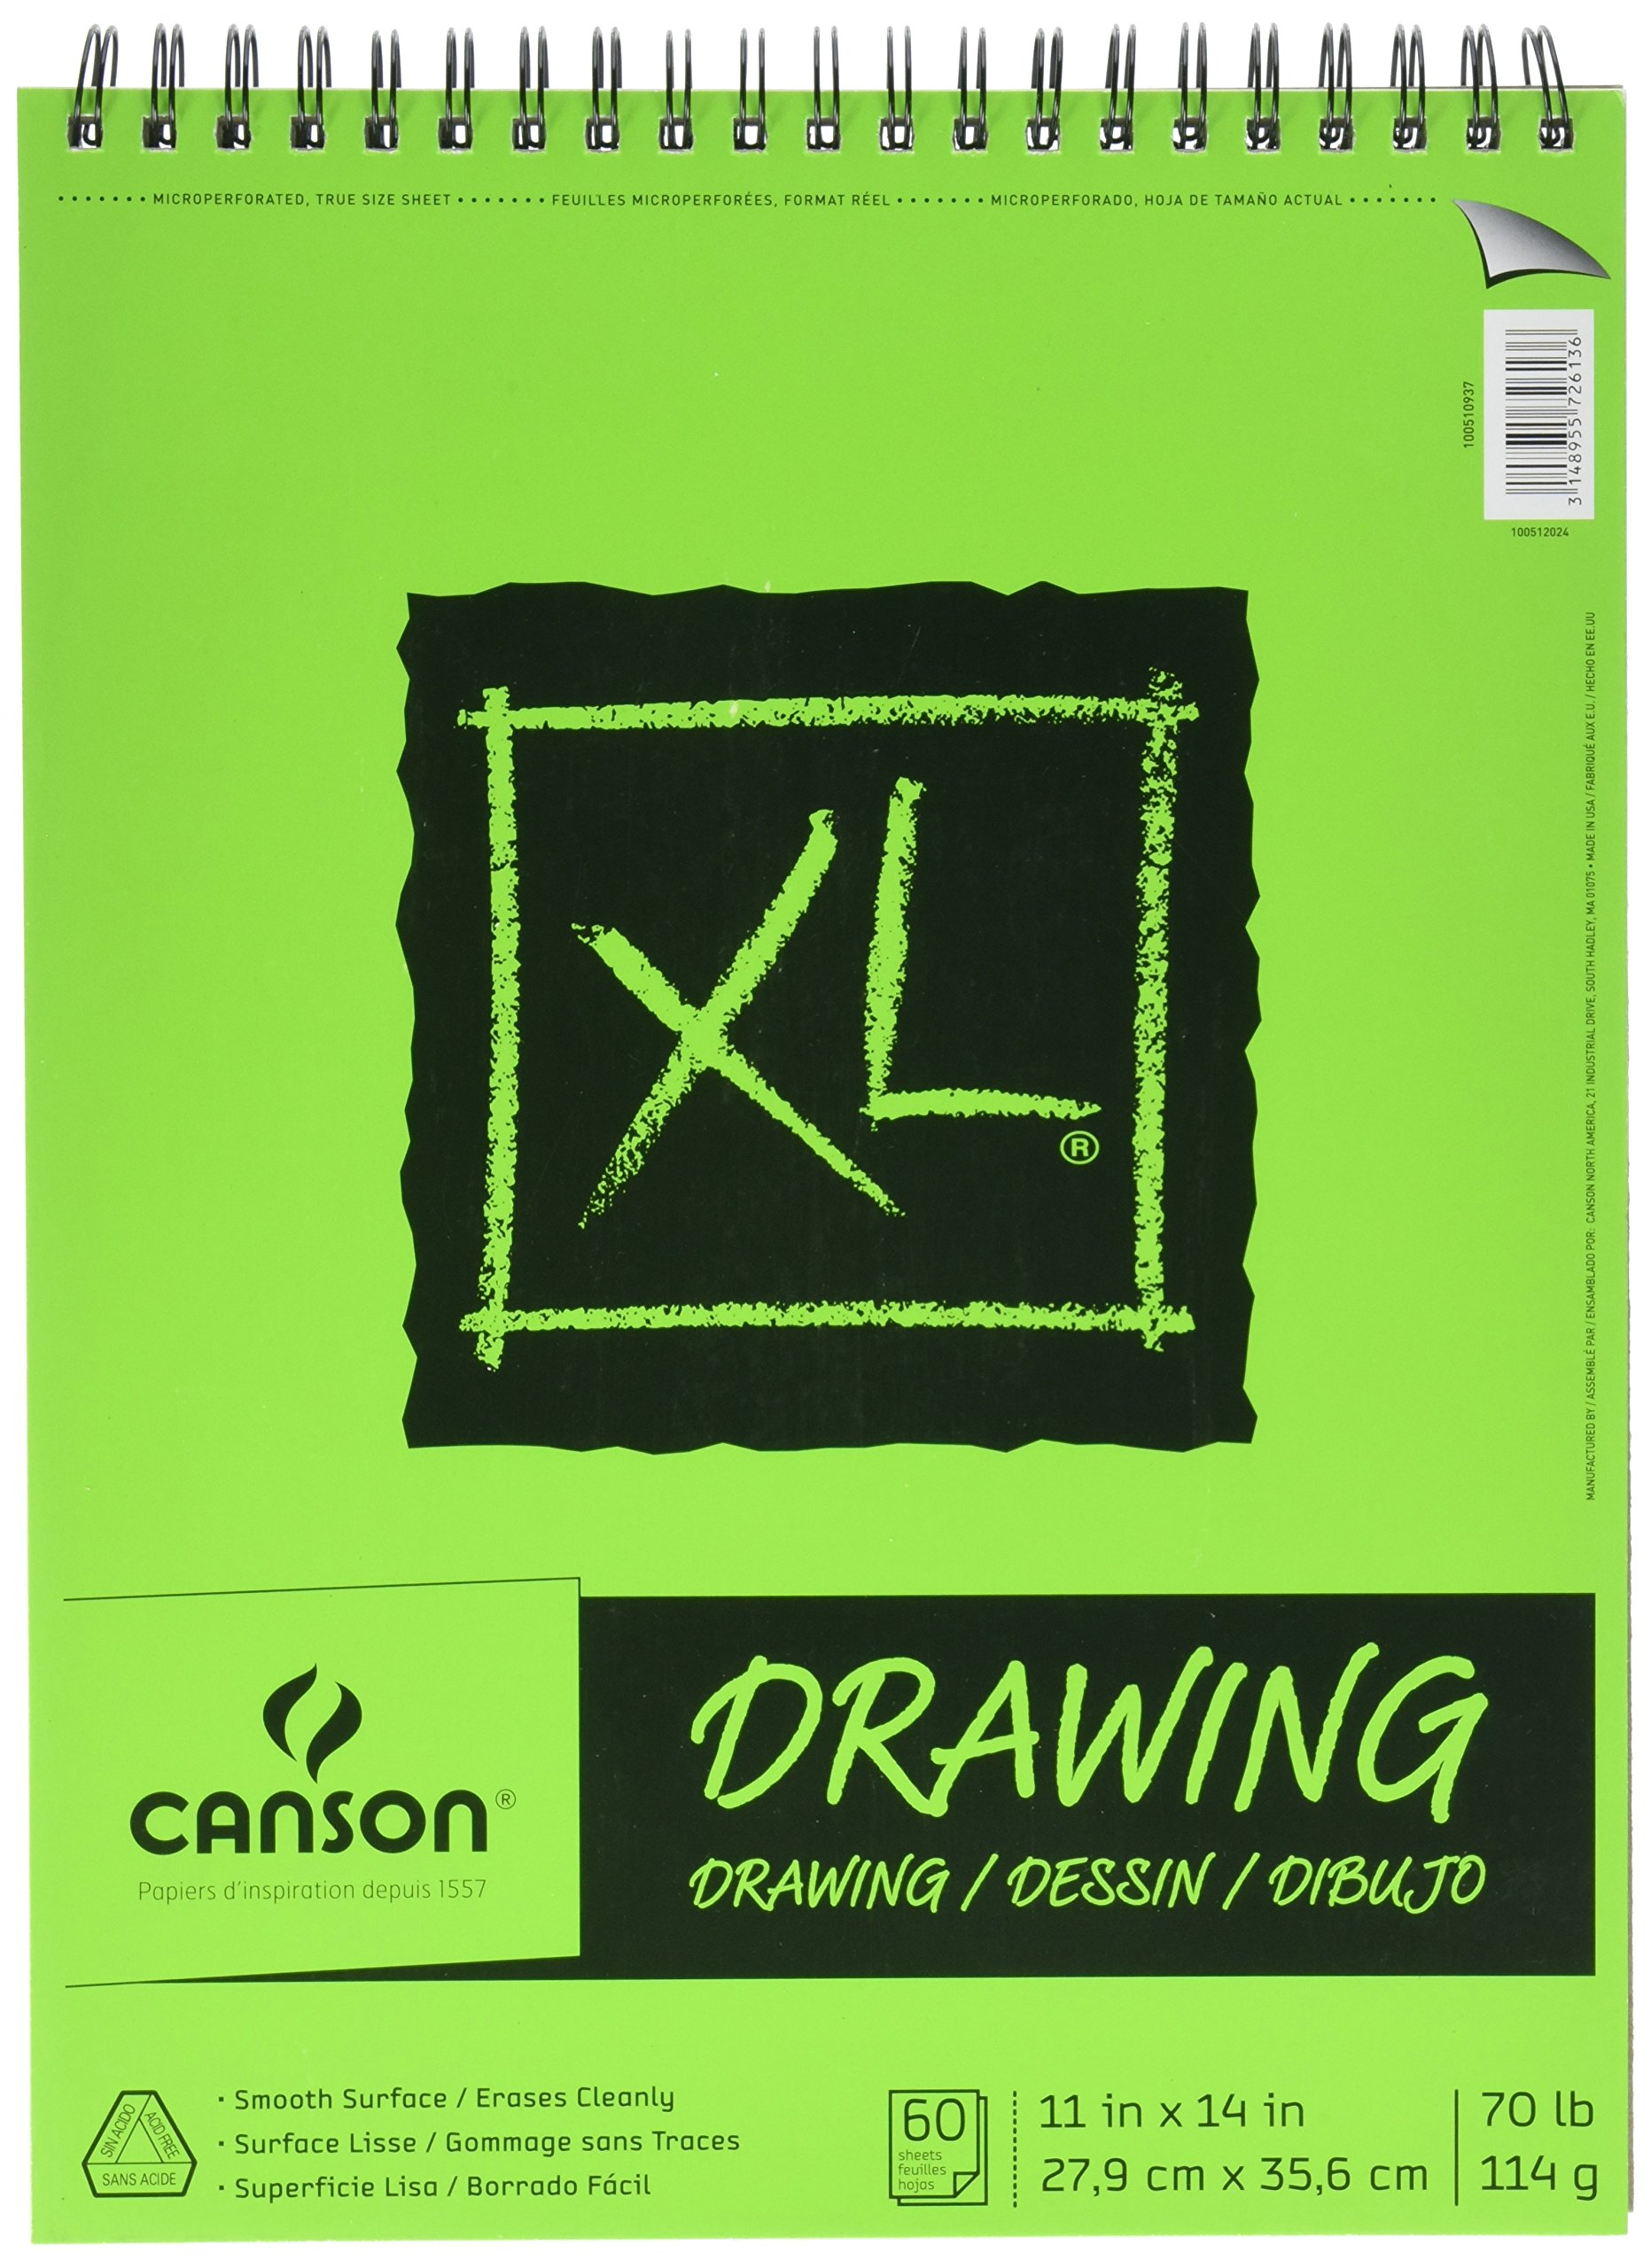 Canson XL Series Drawing Paper Pad, Micro Perforated, Smooth Surface, Side Wire Bound